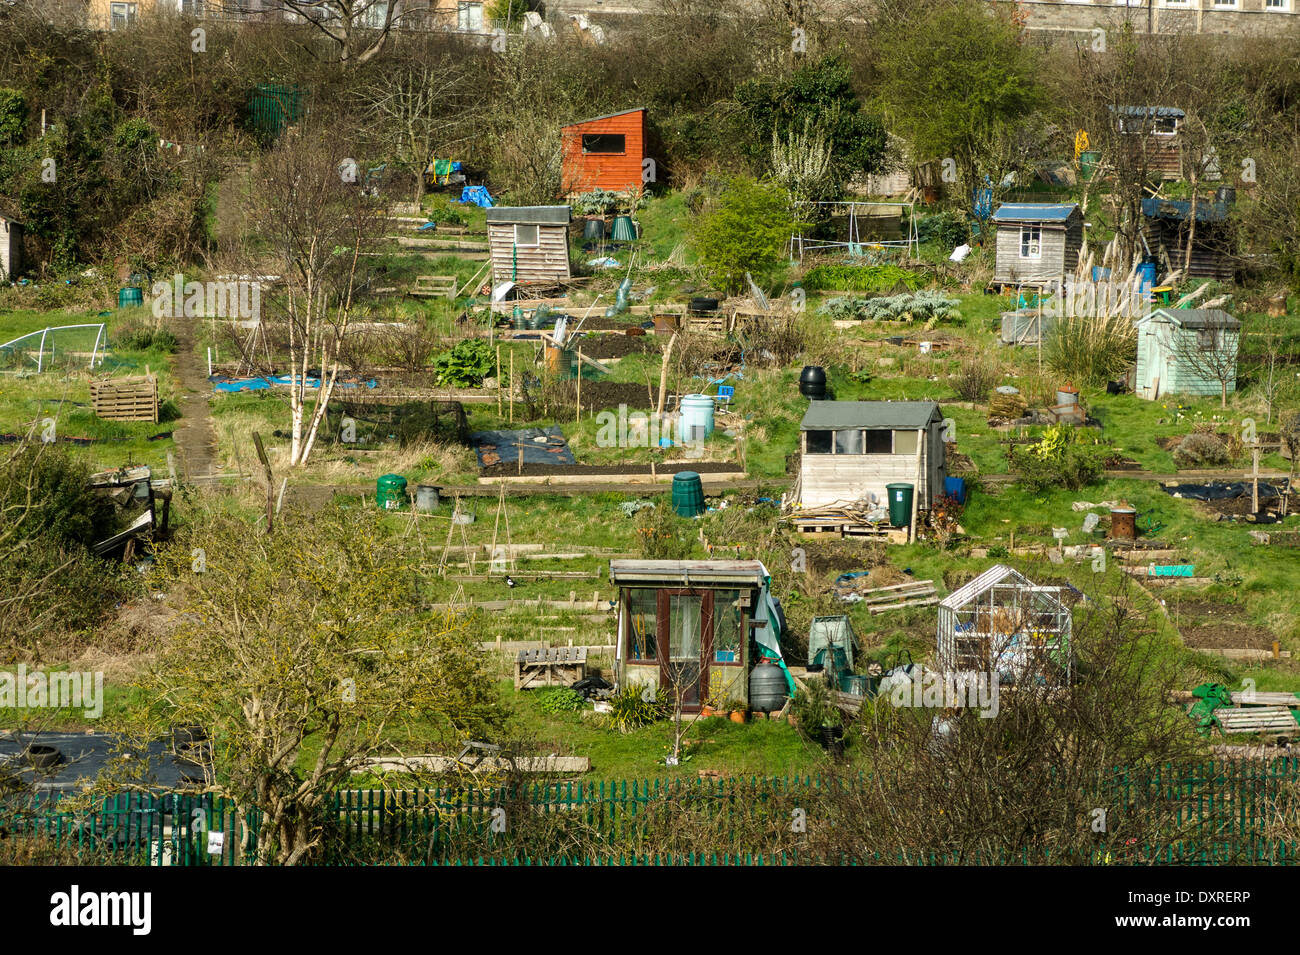 Sheds and allotments alongside railway line into Bristol - Stock Image